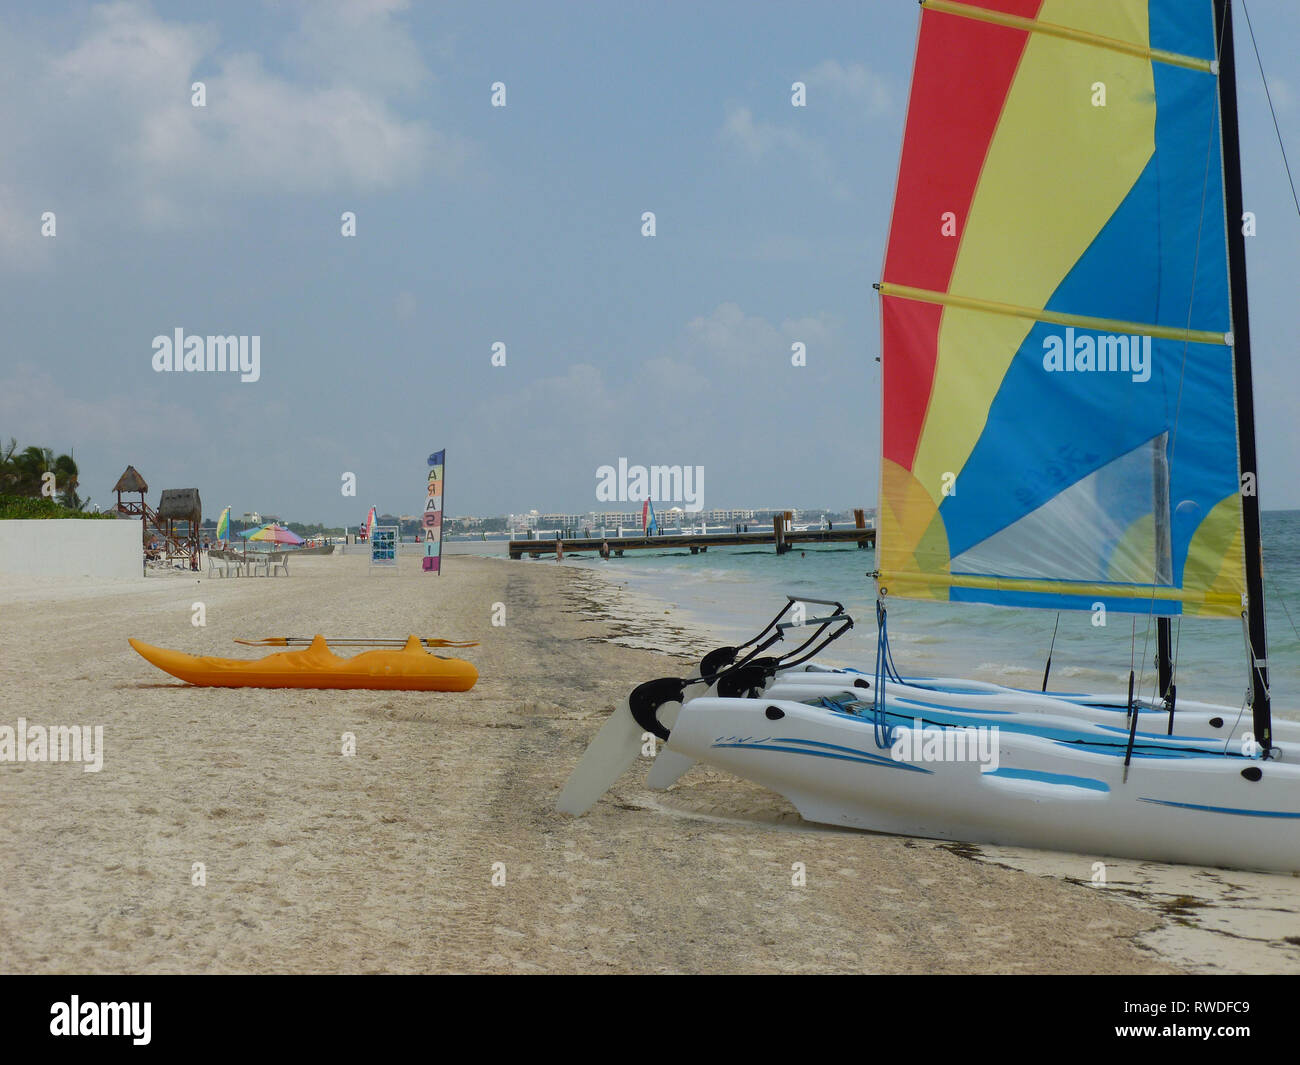 Beach and resort scenes on the Mexican Riviera near Cancun. - Stock Image